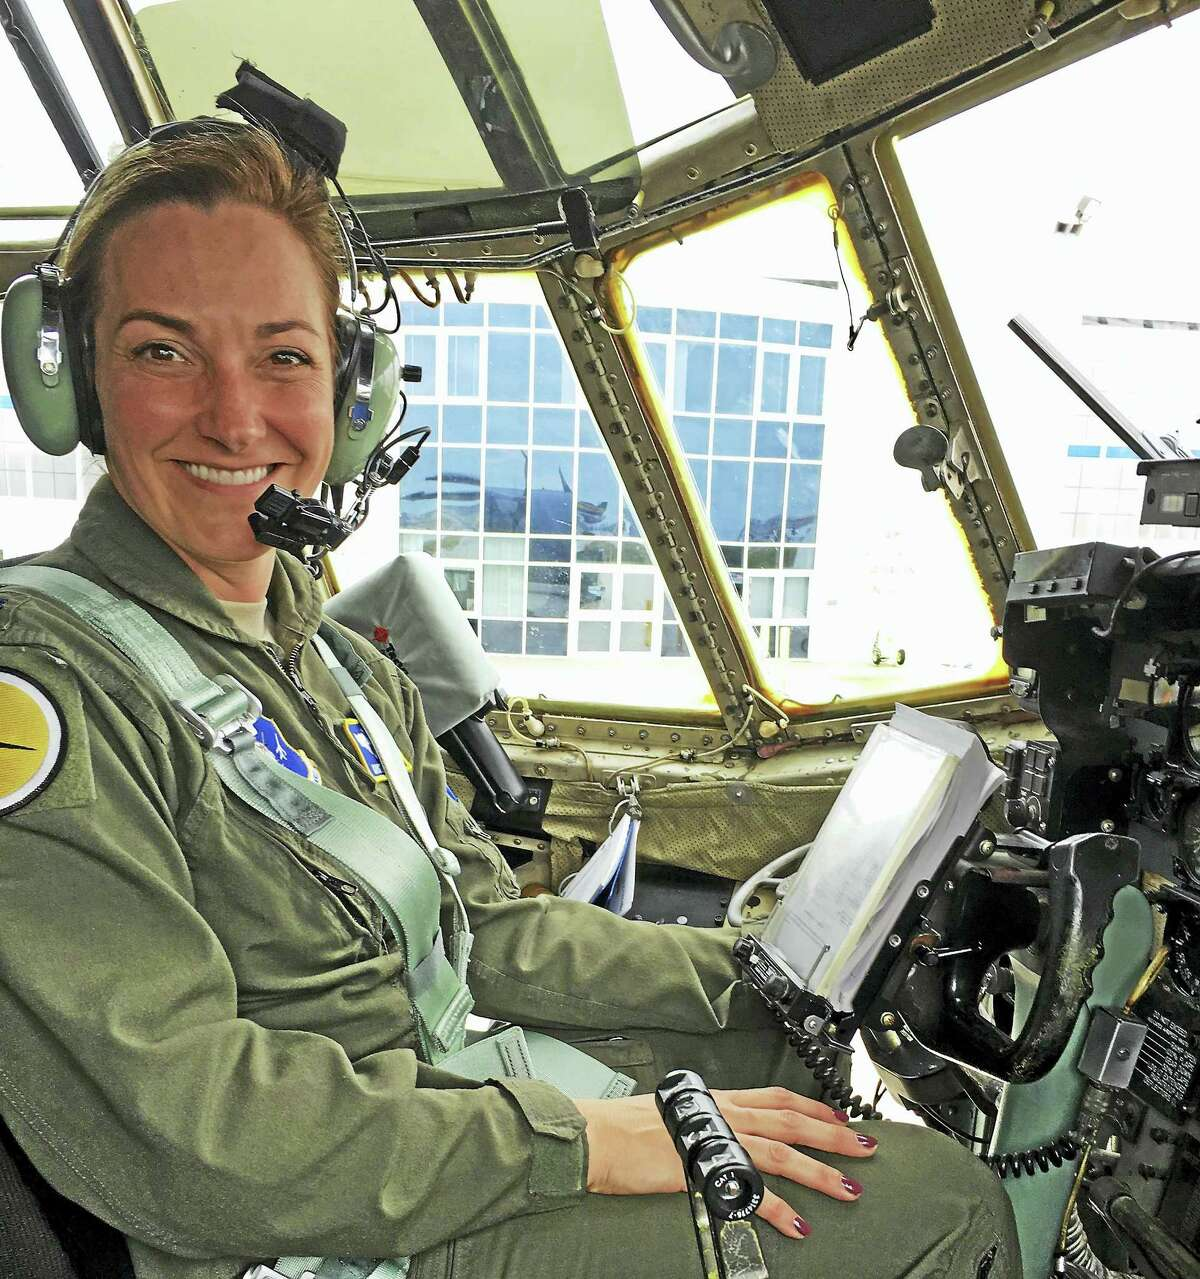 Let. Col. Kristen Snow will speak as a guest on March 11 at the New England Air Museum, during the Women Take Flight Day celebration and programs.